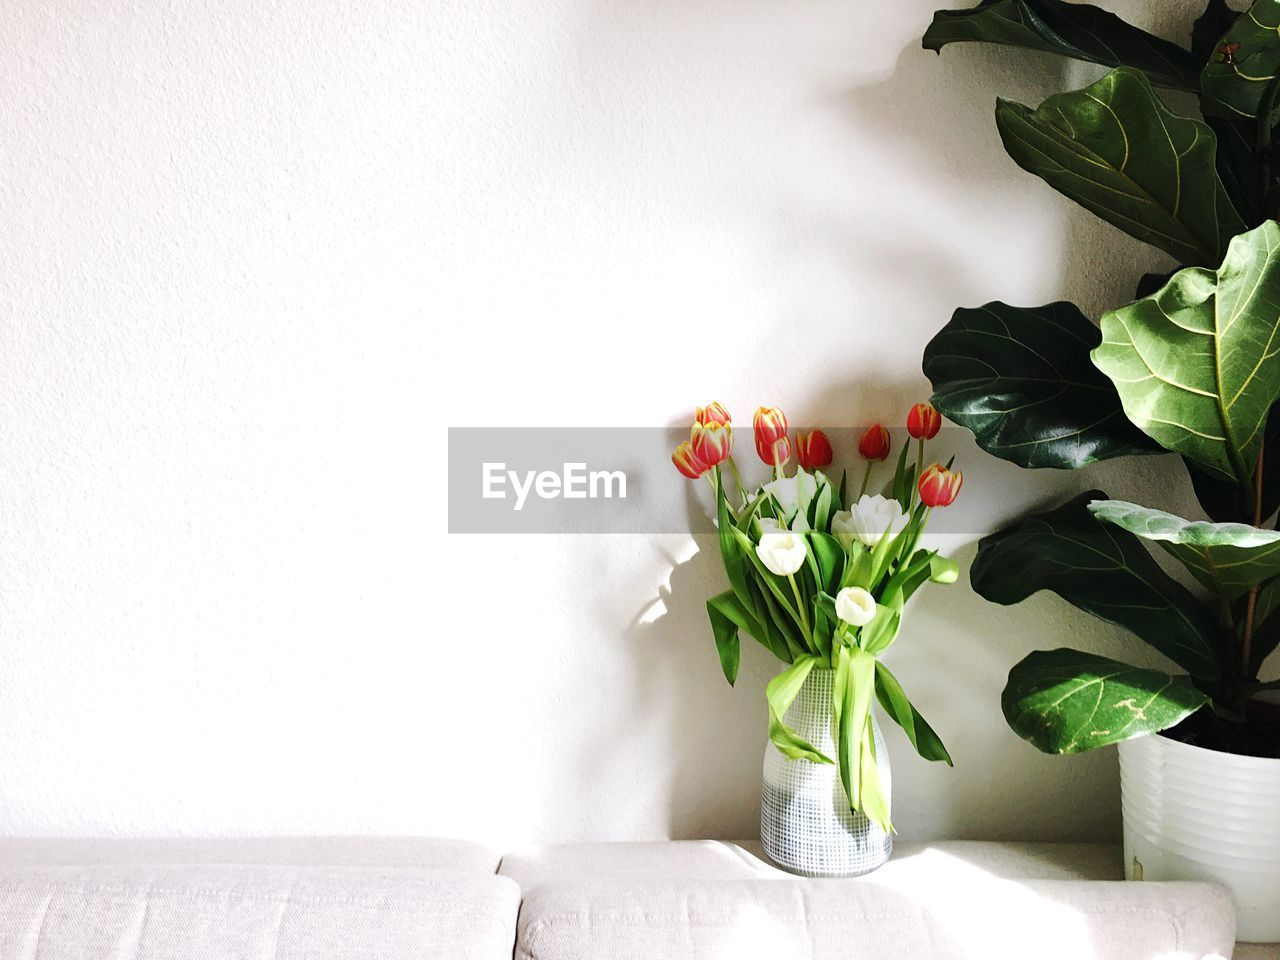 flower, flowering plant, plant, freshness, plant part, beauty in nature, leaf, nature, fragility, vase, indoors, vulnerability, white color, flower head, wall - building feature, petal, no people, inflorescence, table, growth, flower arrangement, bunch of flowers